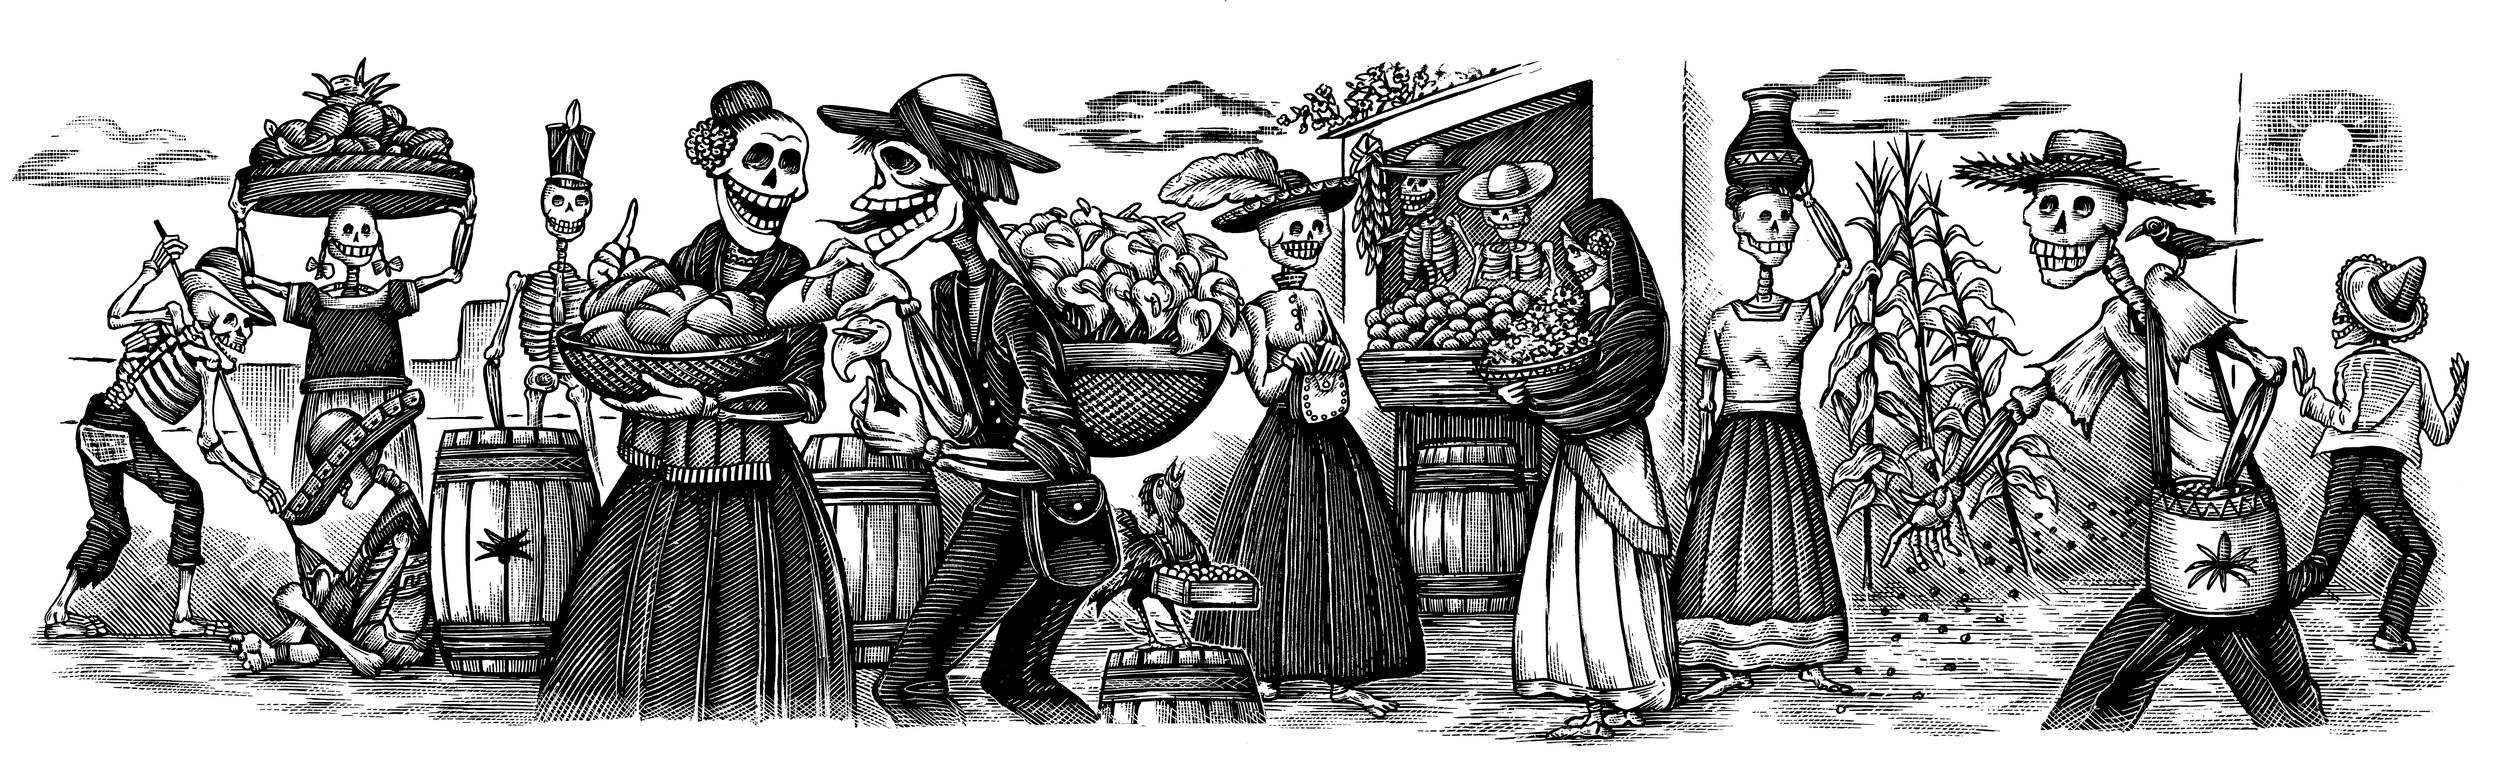 """Recuerdo,"" the label for Espolòn Tequila Reposado, depicting the Mexican marketplace, and made as tribute to Jose Guadalupe Posada calavera skeletons."